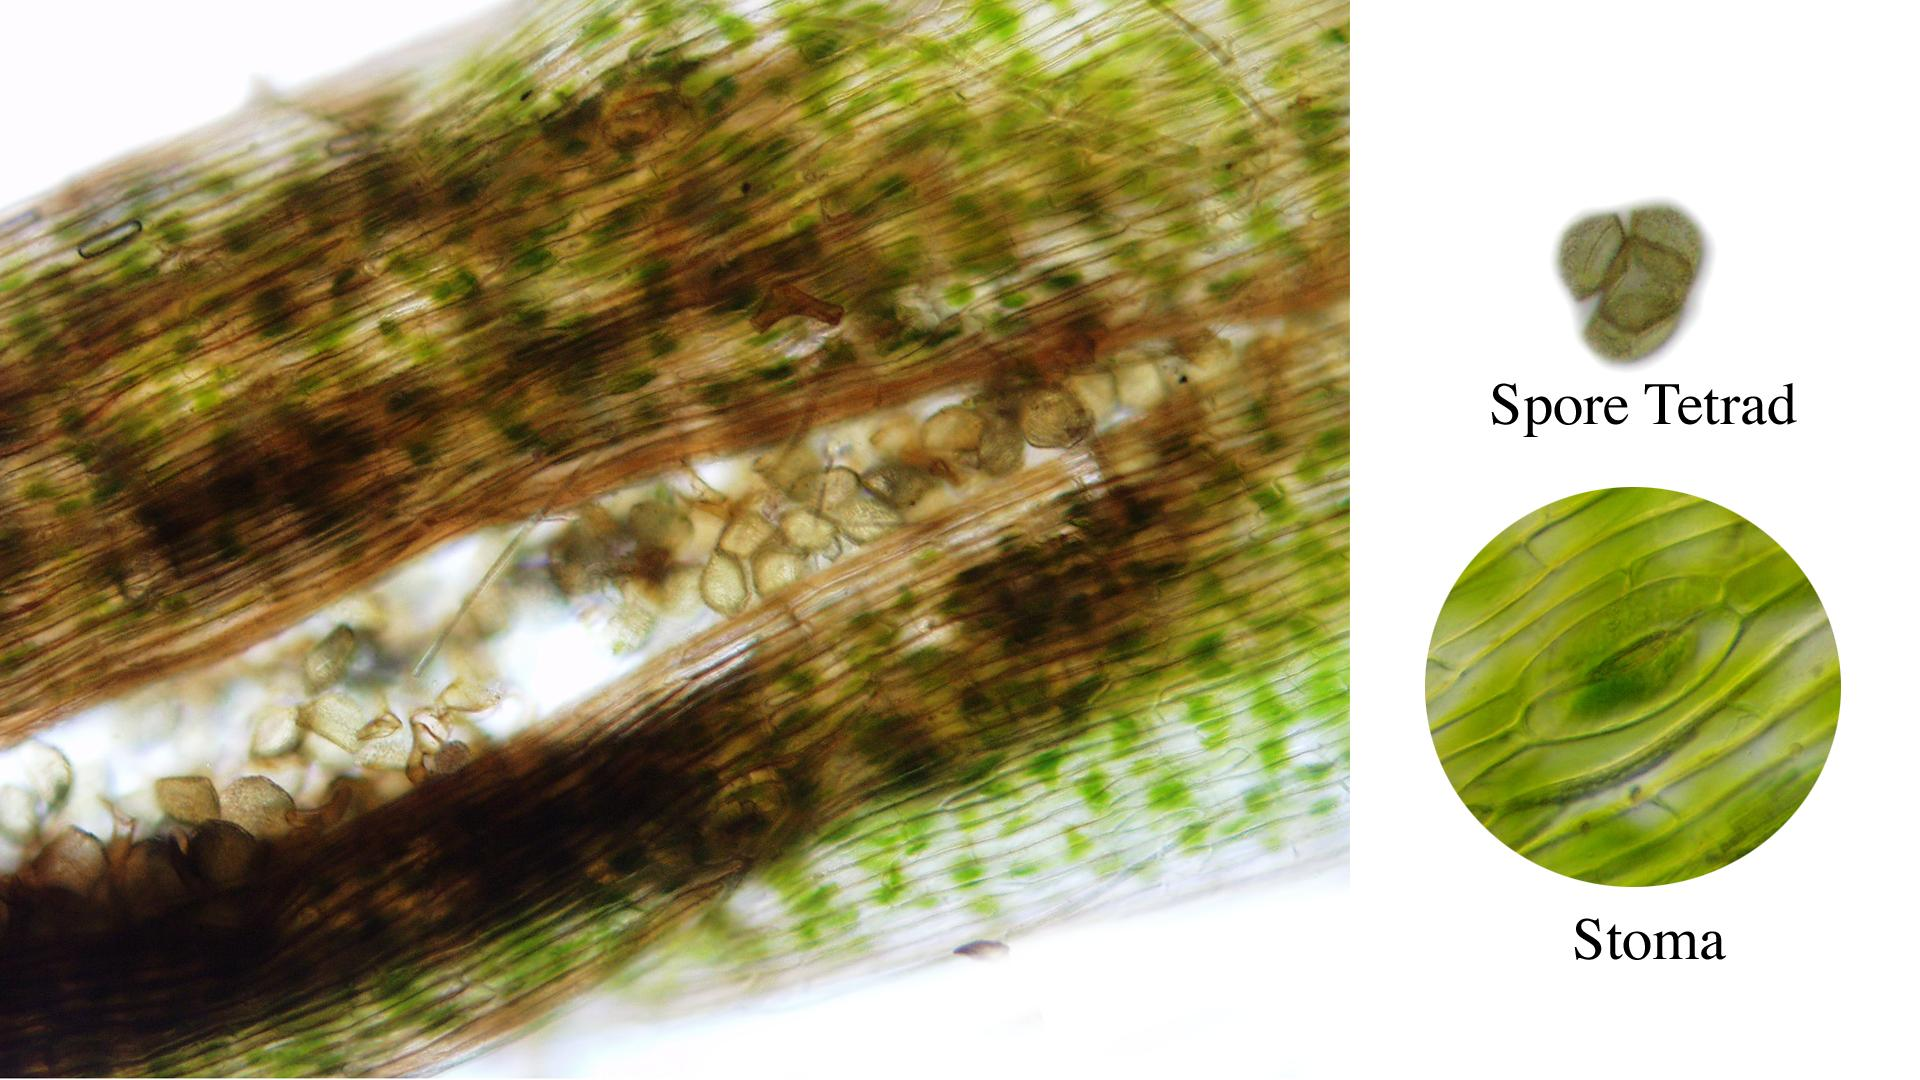 Hornwort - composite of images of the sporophyte : sporangium, tetrad of spores and a stoma